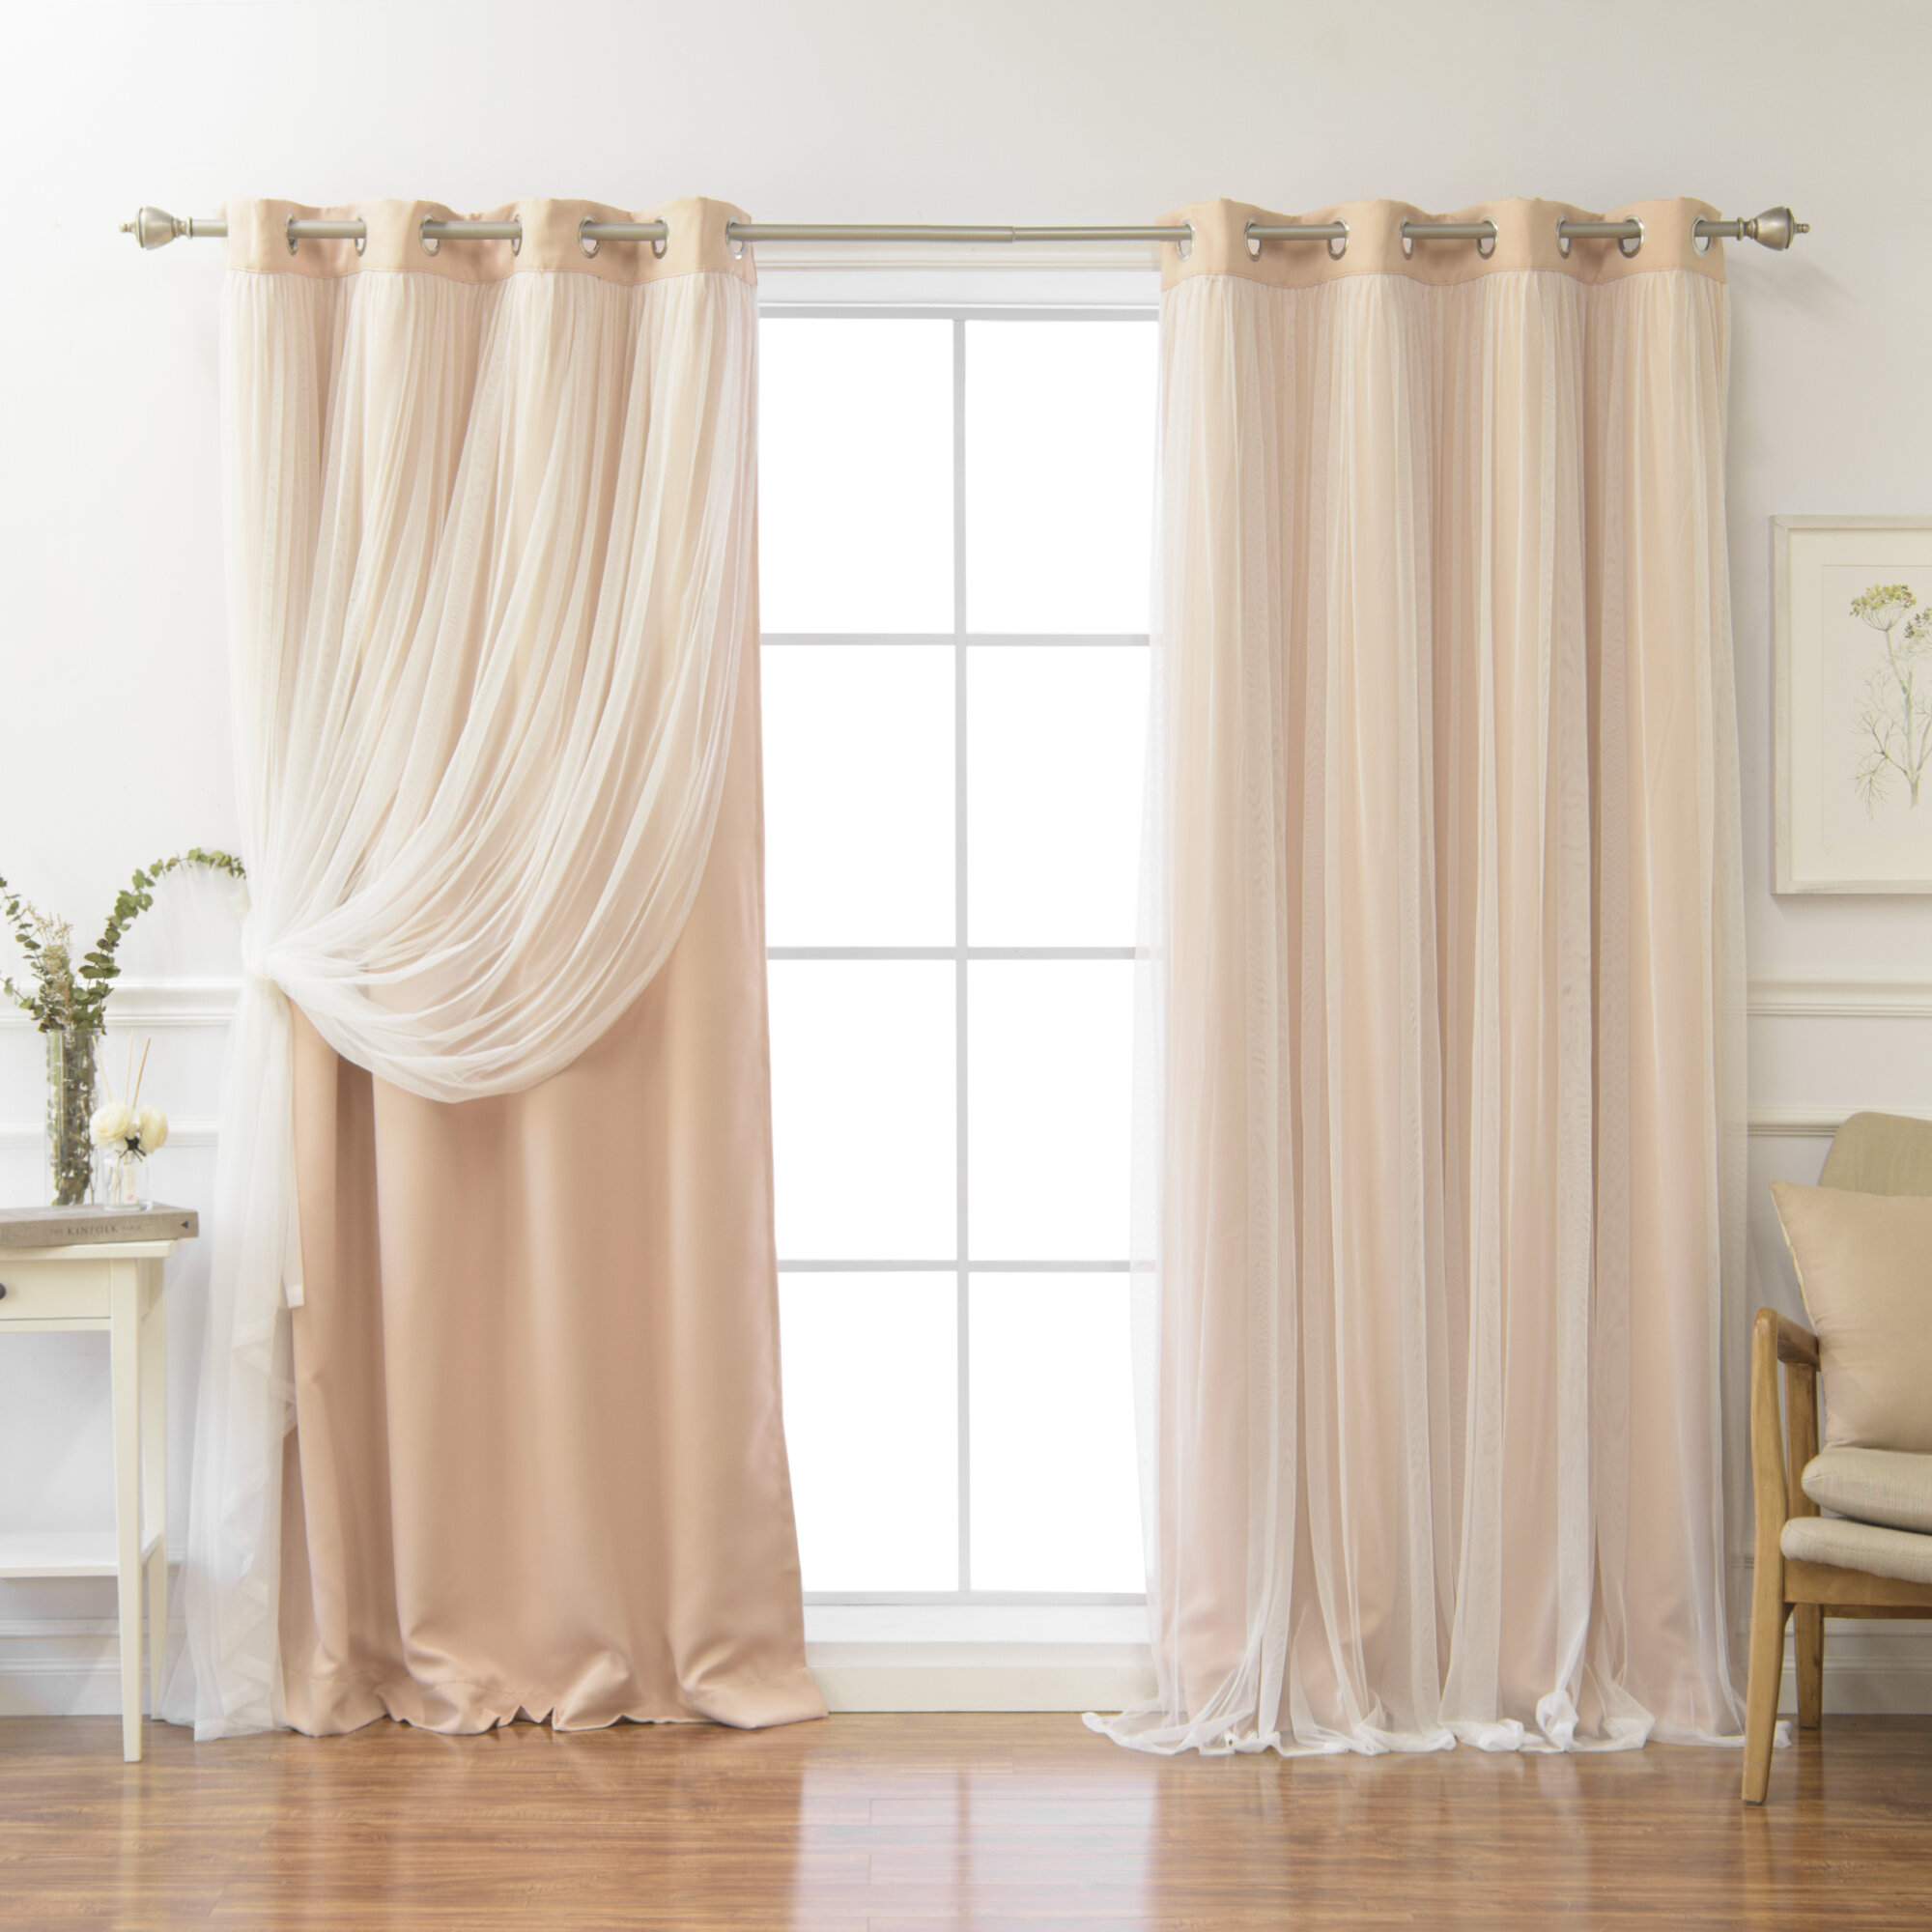 drape carousel toile standard curtains lining panels chevron pink large gray panel length and coordinating width vintage inch drapes